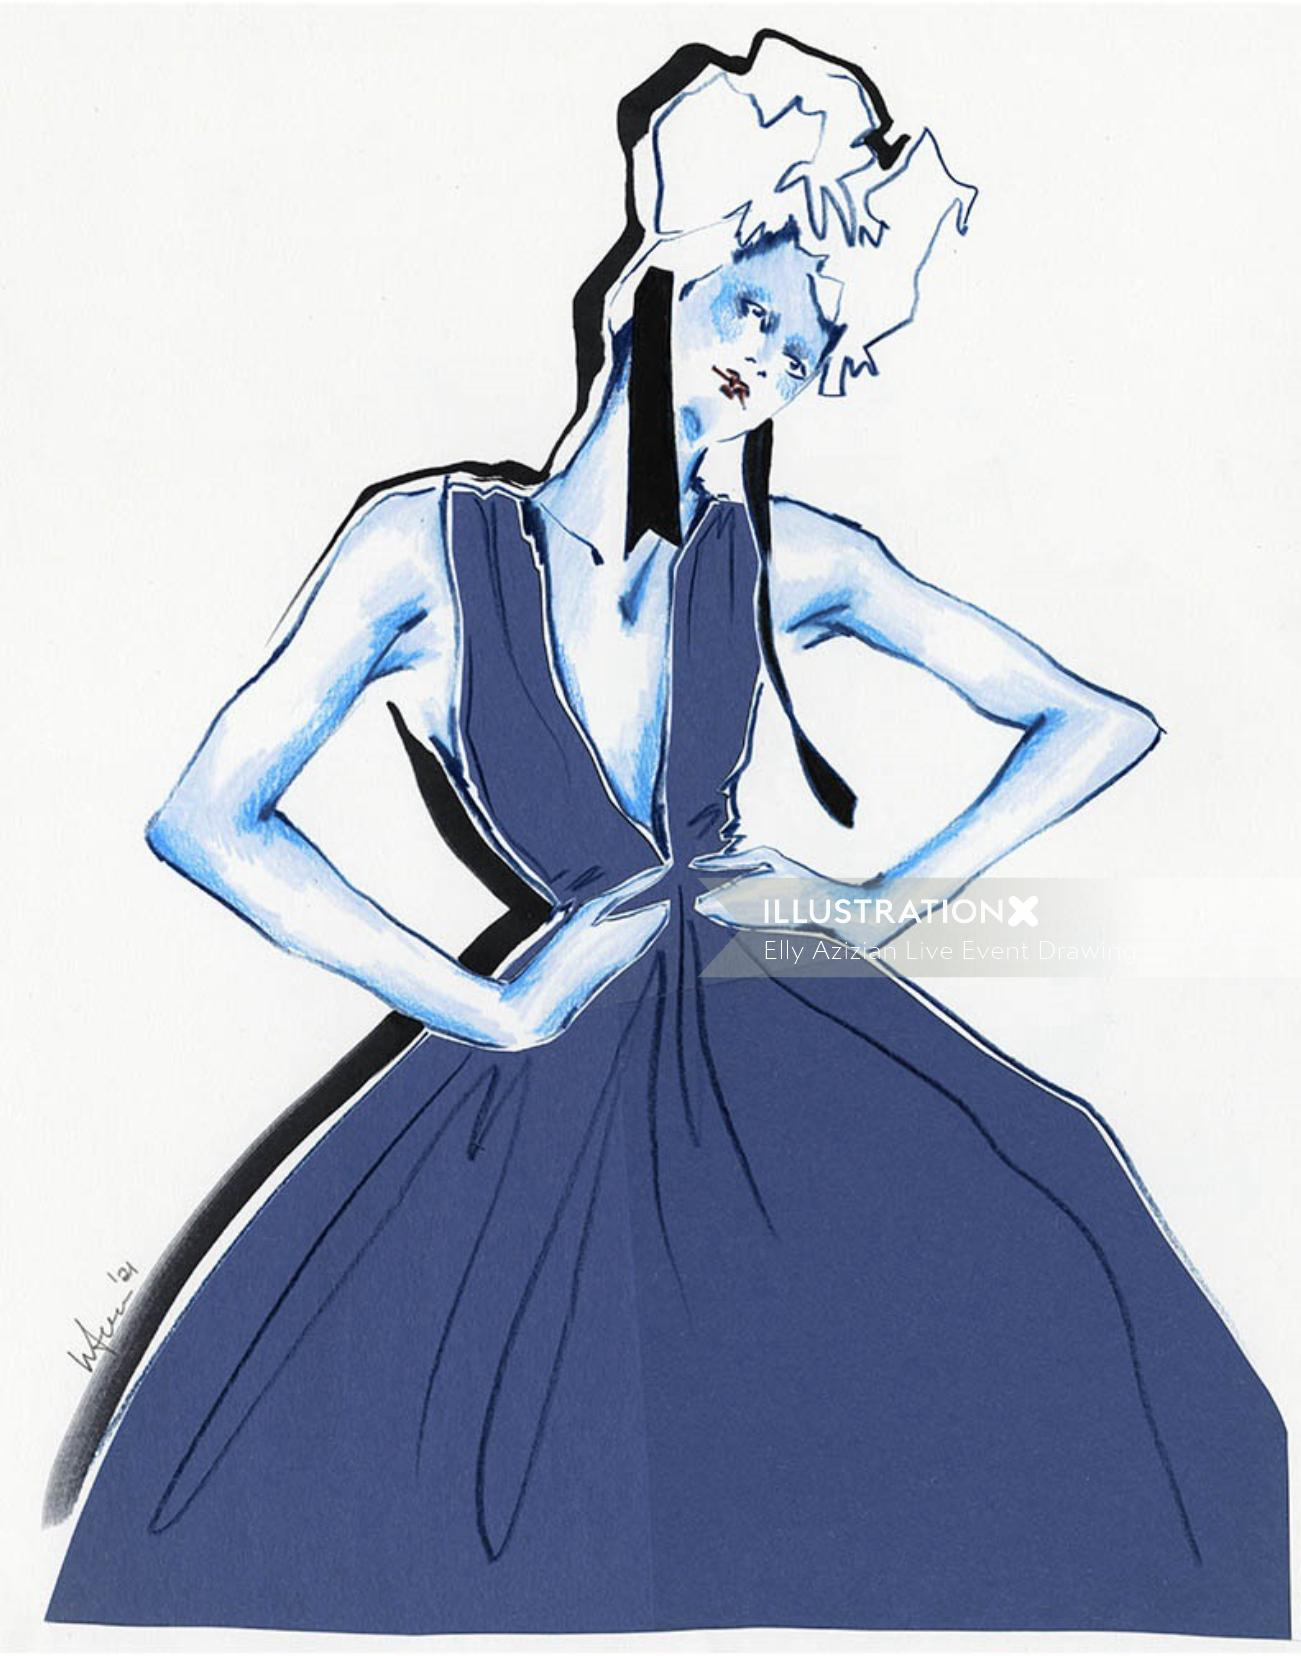 Live Drawing of Model with Long Gown